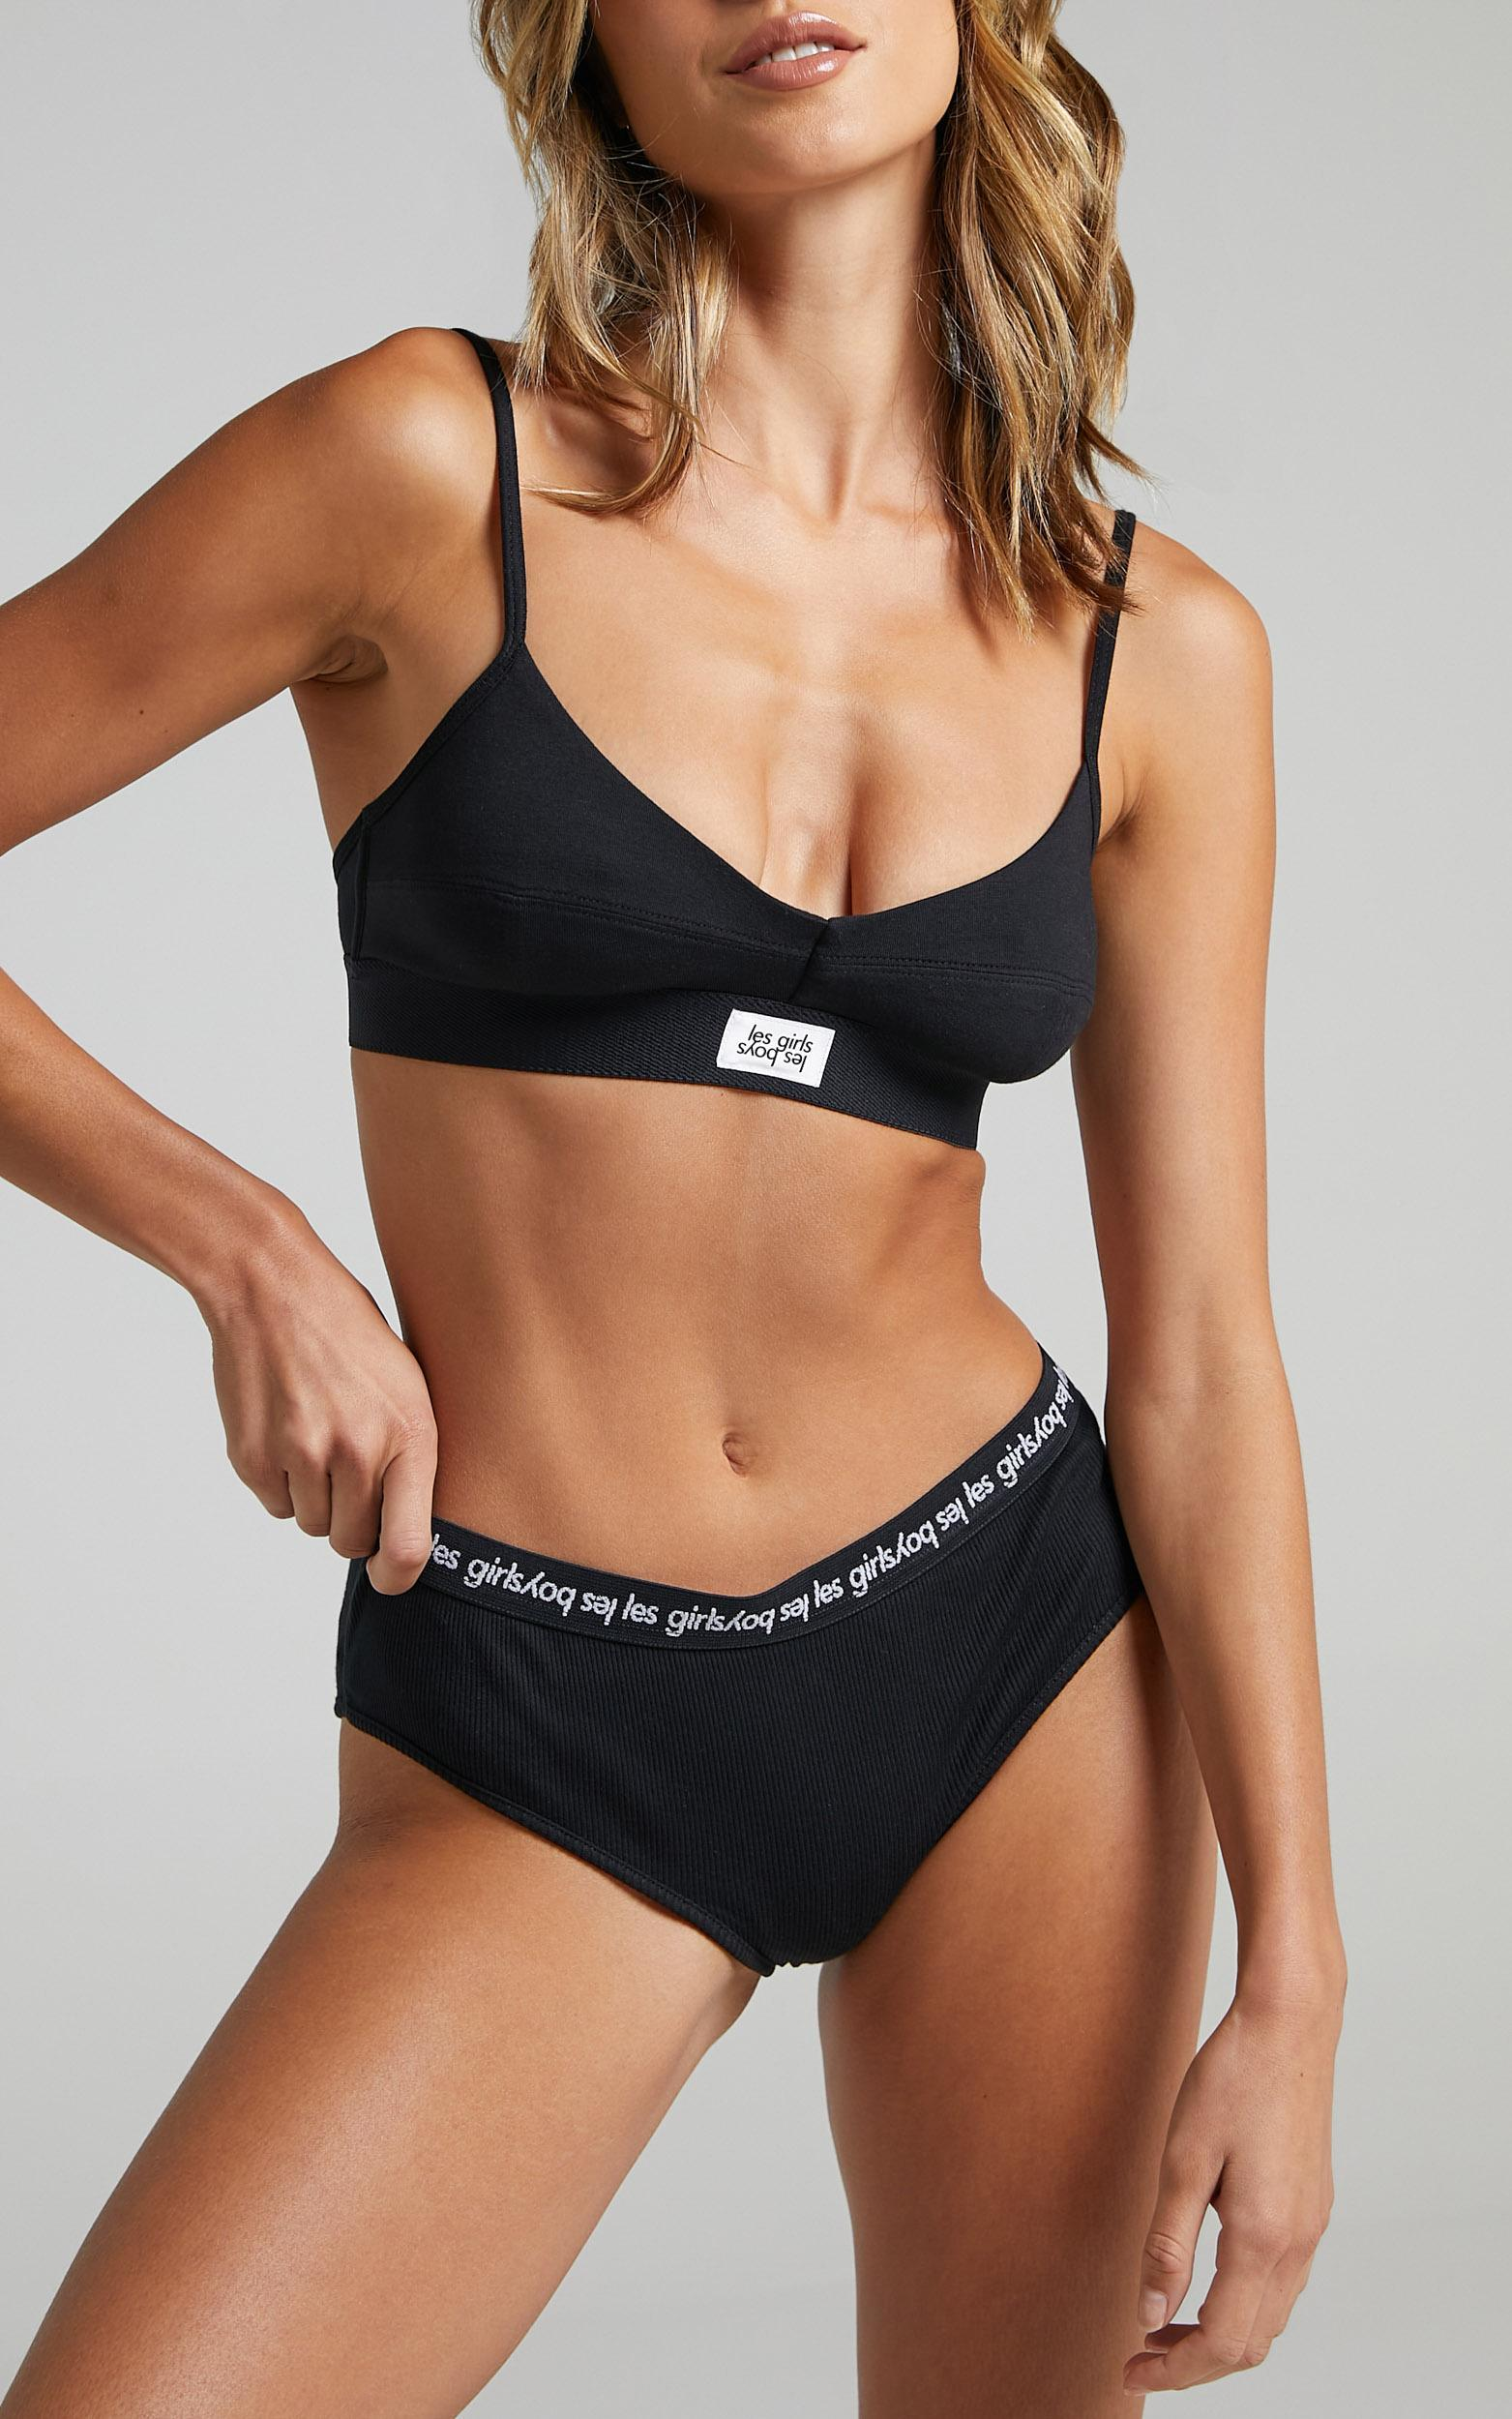 Les Girls Les Boys - Rib Jersey Branded Brief in Black - XS, BLK1, hi-res image number null